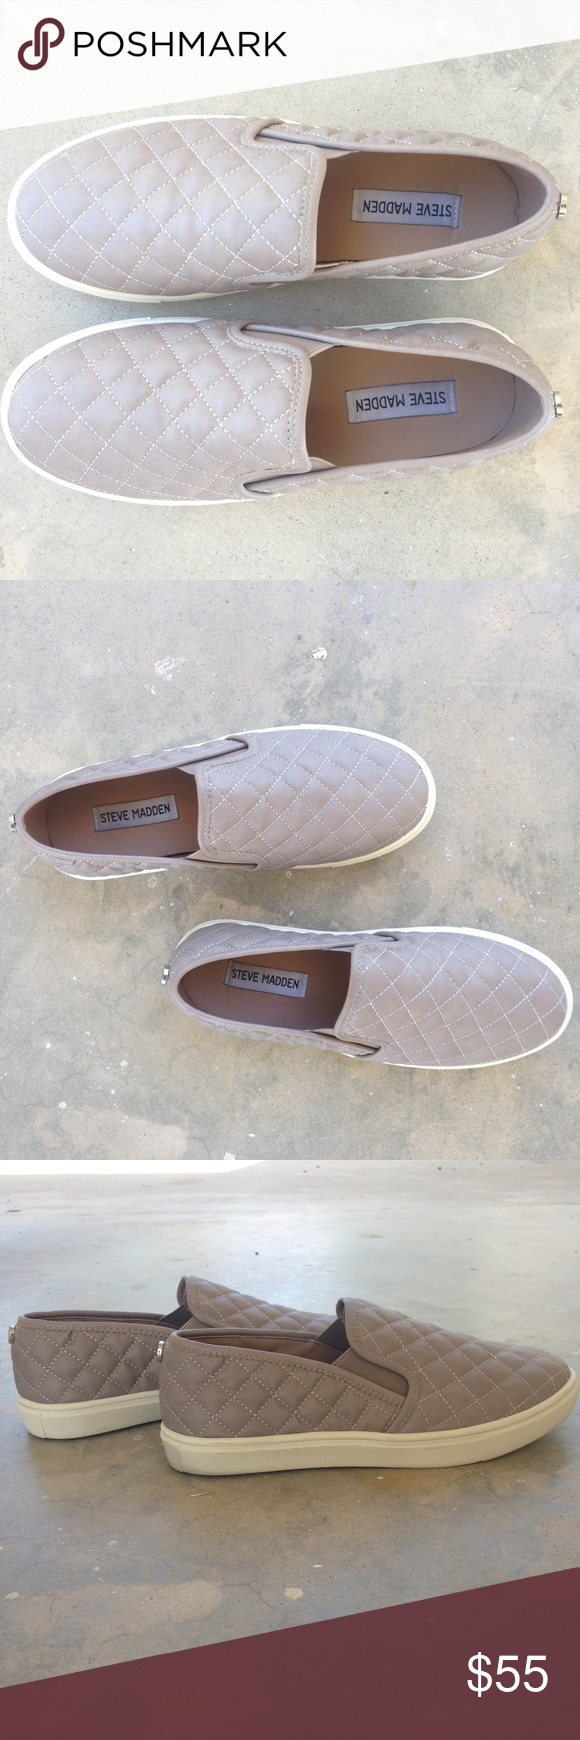 4180724ad0f Steve Madden Ecentrcq Slip-On Sneakers These quilted slip-ons are a chic  and comfortable option for everyday. The taupe grey color of these is  neutral ...